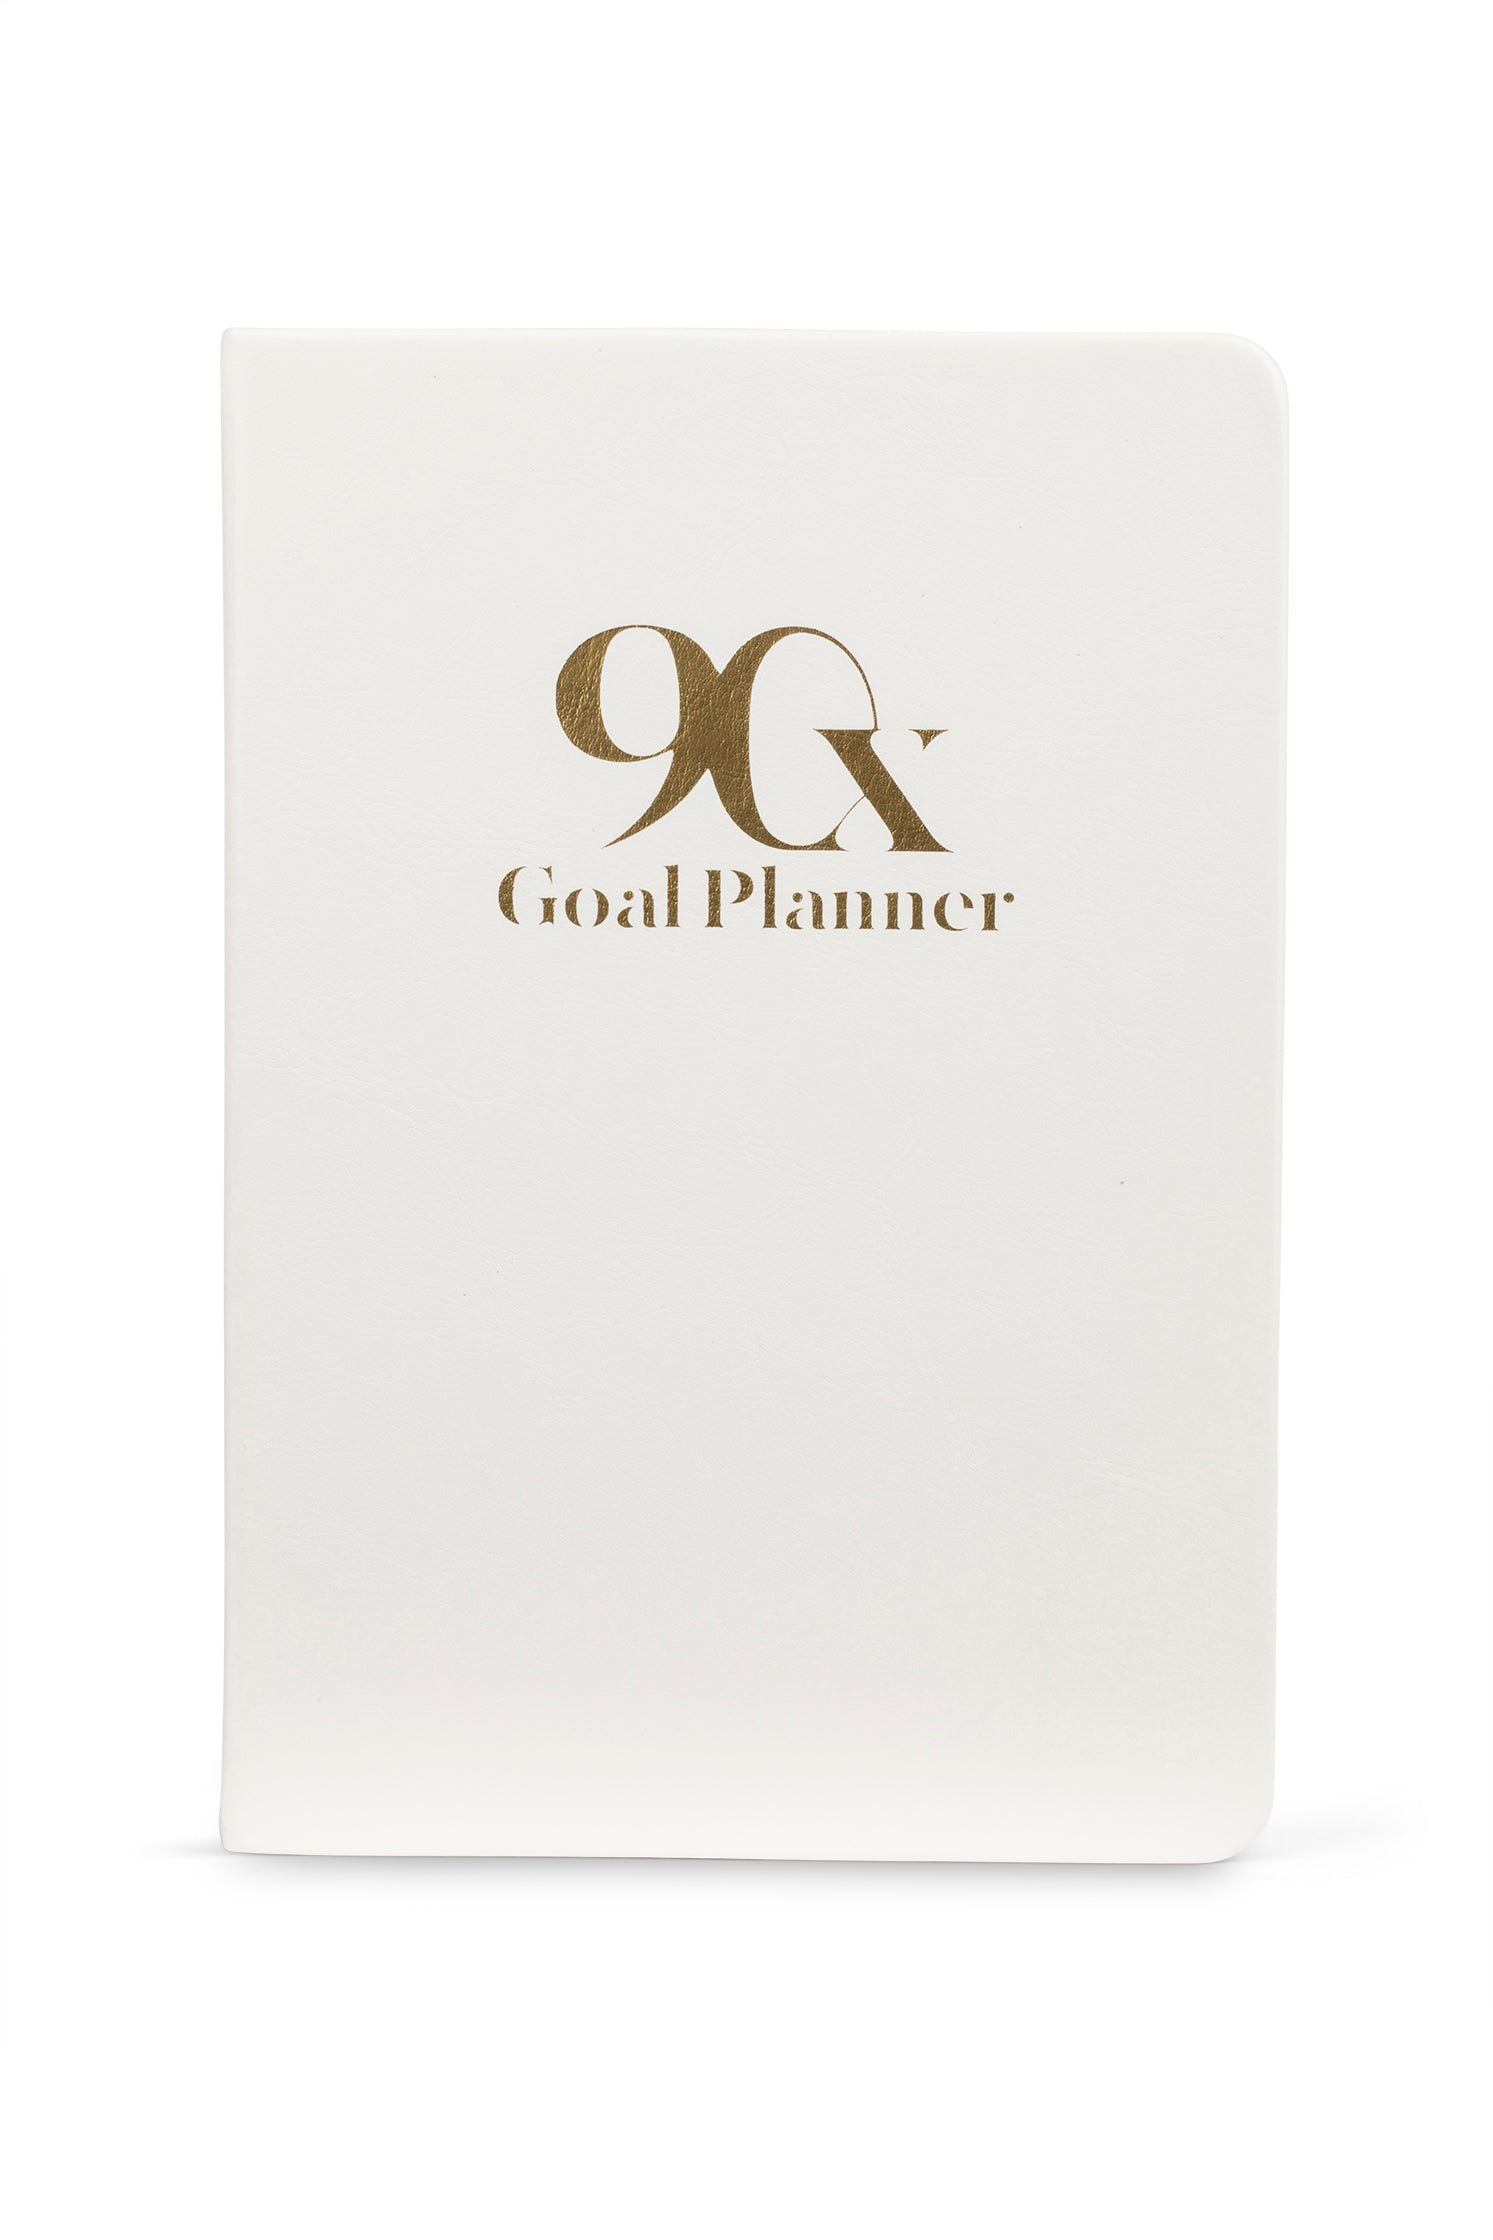 90X® Goal Planner First Edition